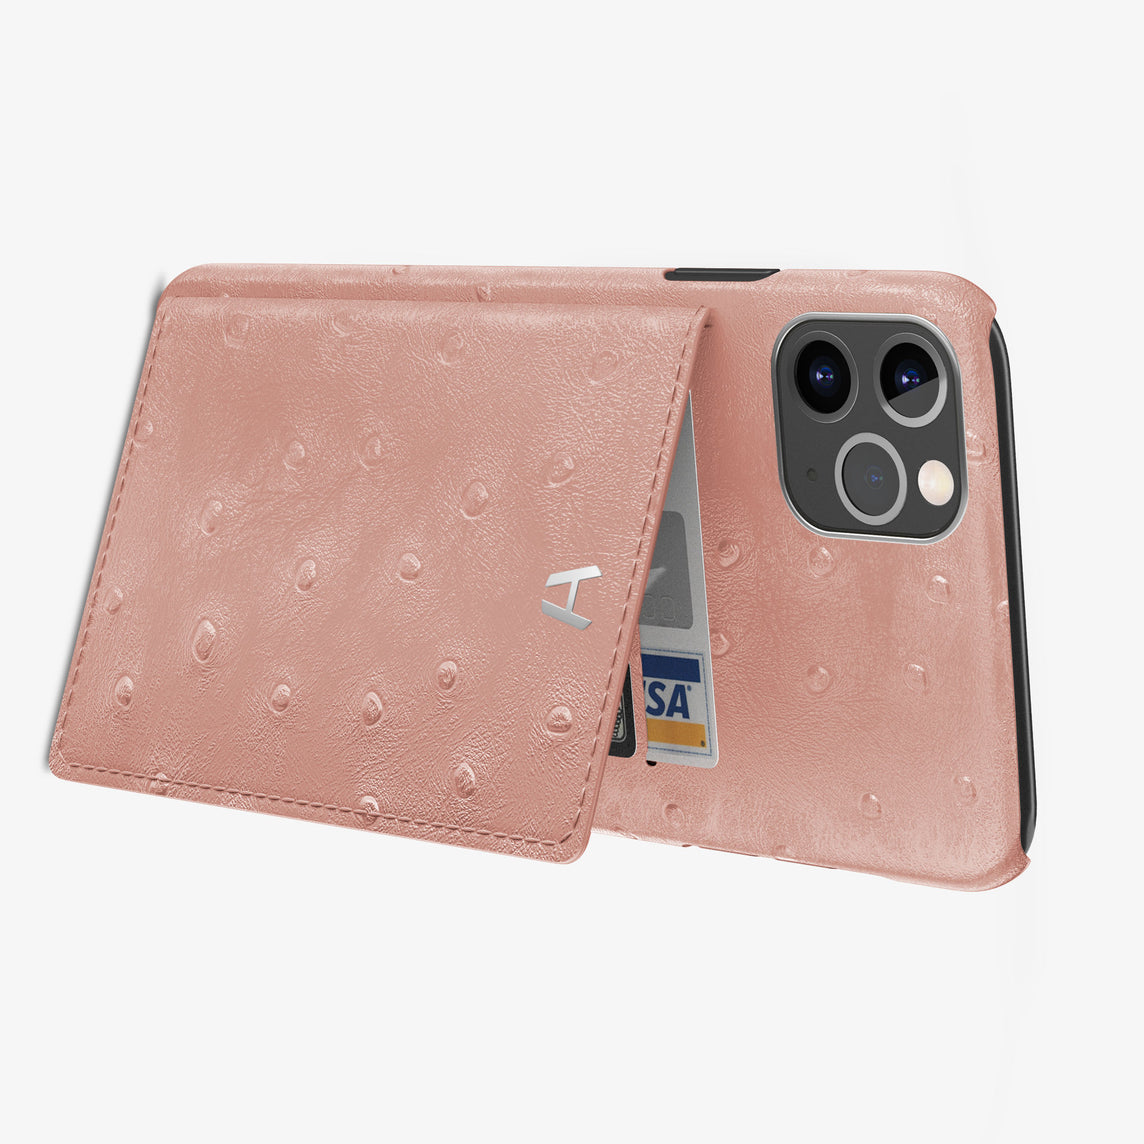 Ostrich Card Holder Flap Case iPhone 11 Pro Max | Pink - Stainless Steel